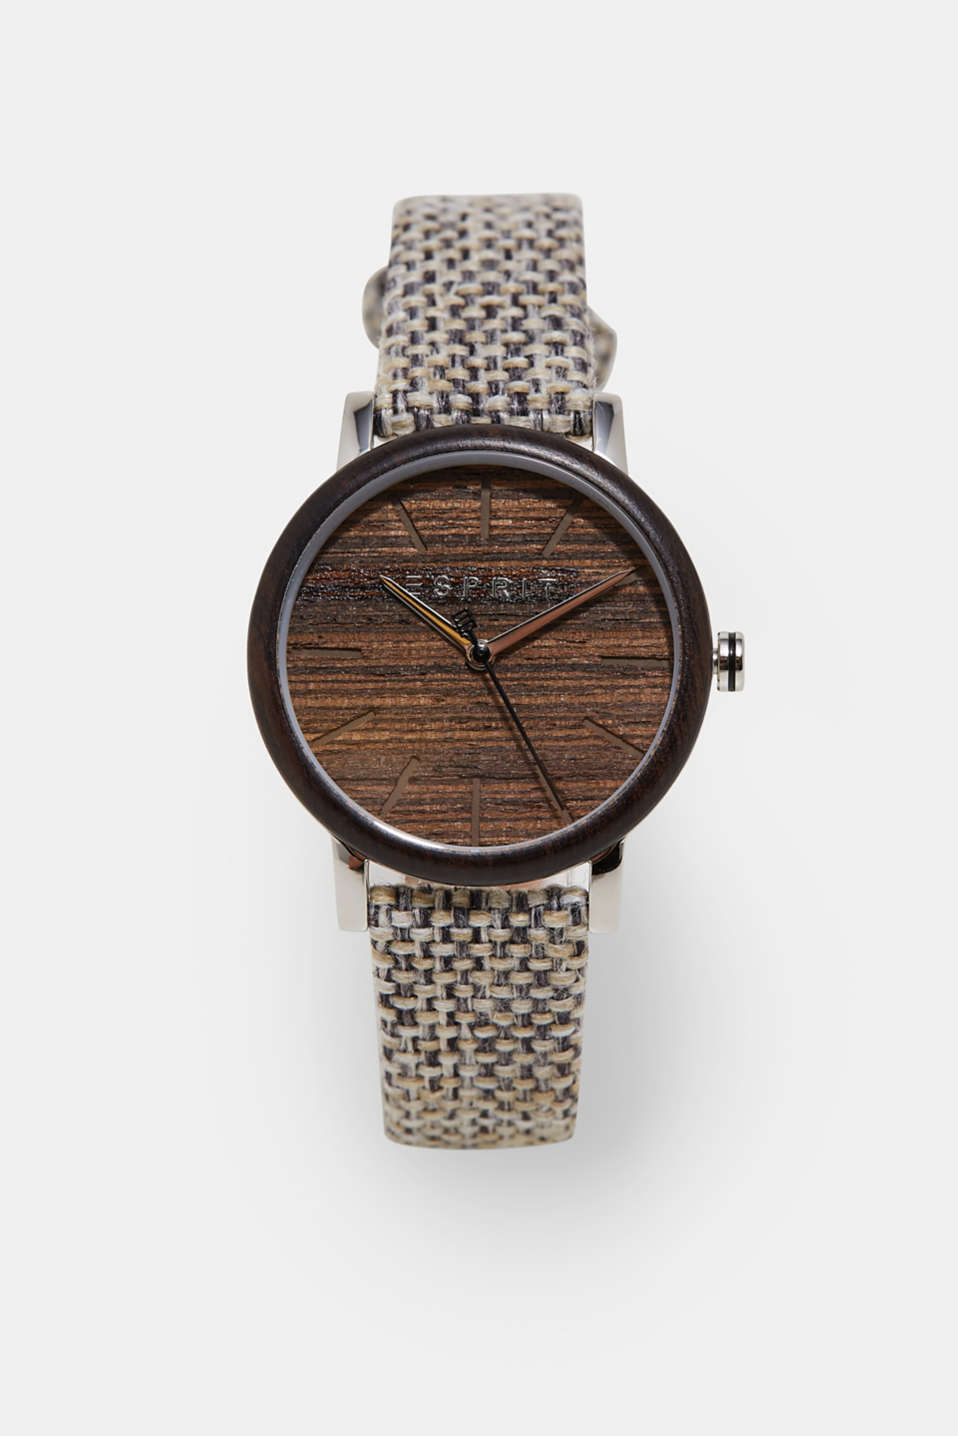 The exciting combination of stainless steel, wood and leather makes this watch extremely eye-catching.